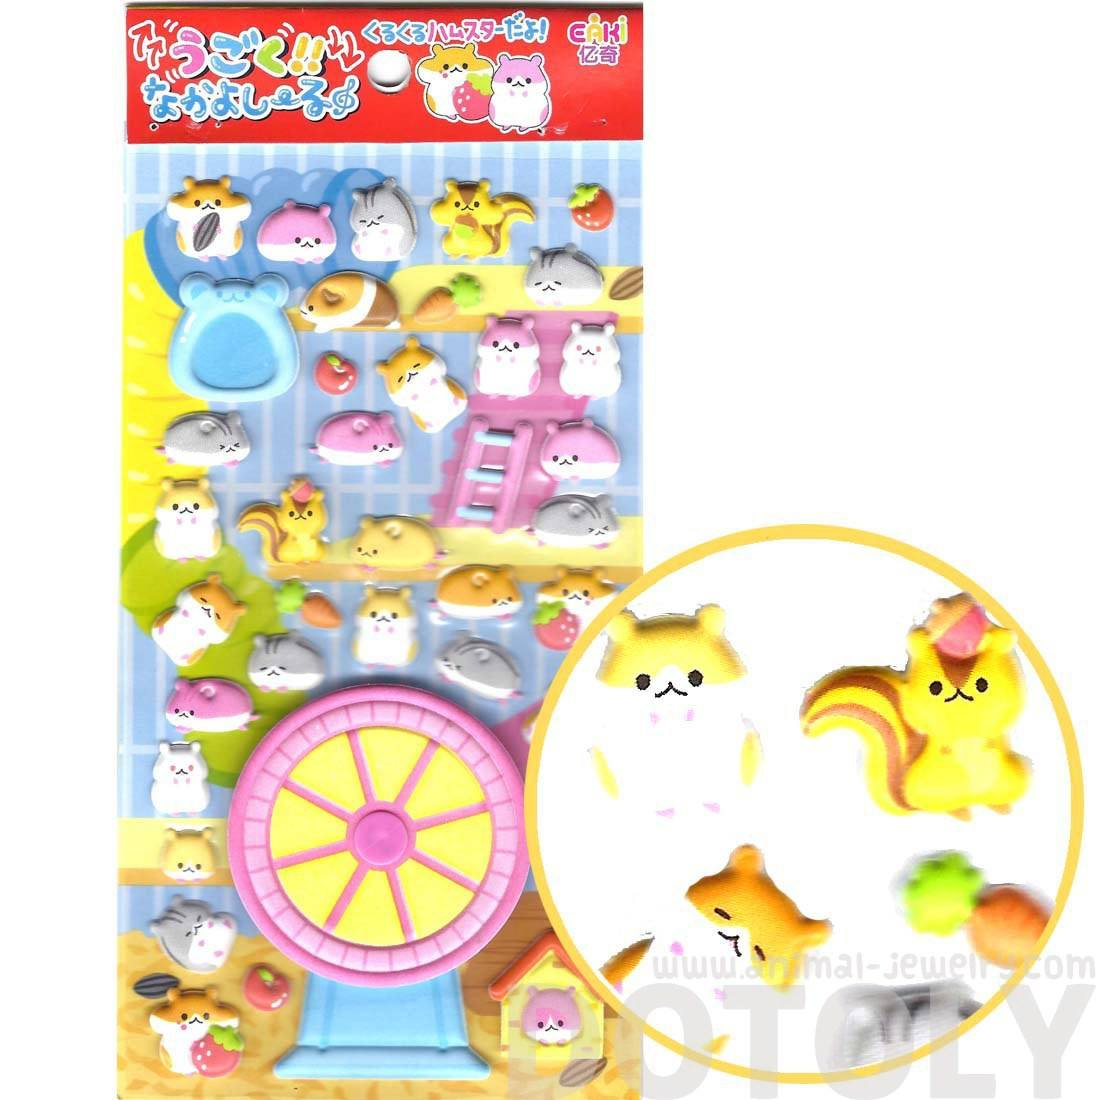 Hamsters Gerbils Guinea Pigs Shaped Animal Interactive Puffy Stickers